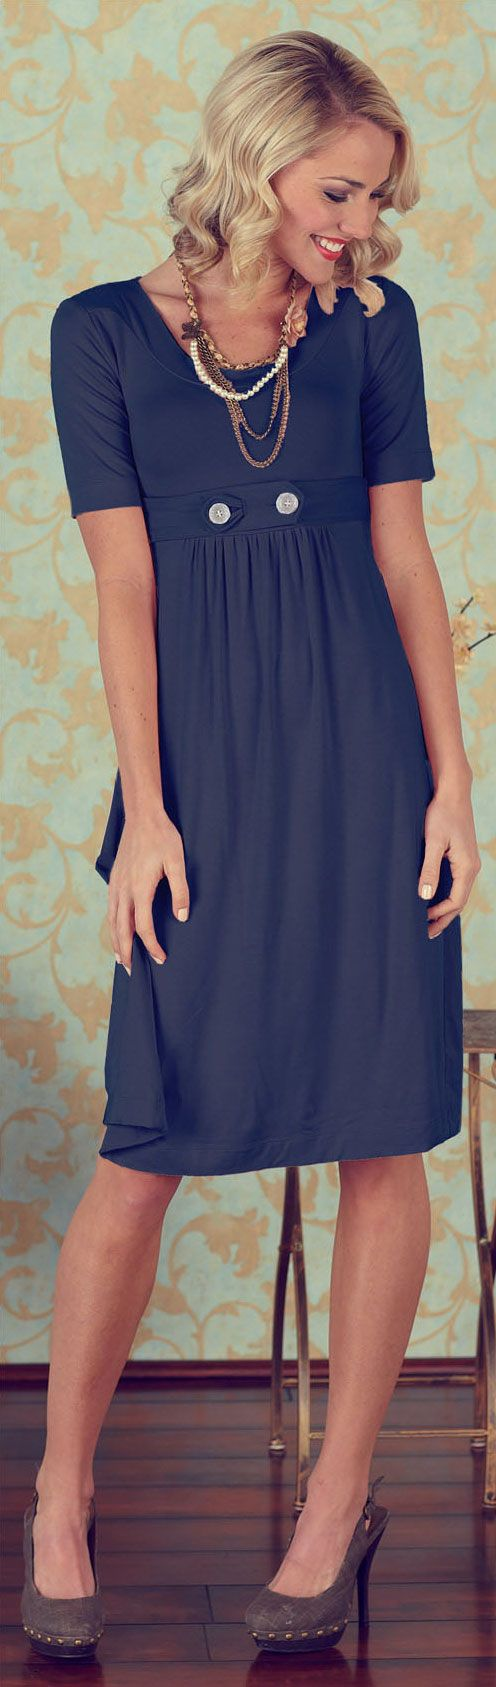 Super cute modest clothing at good prices - Jen Clothing